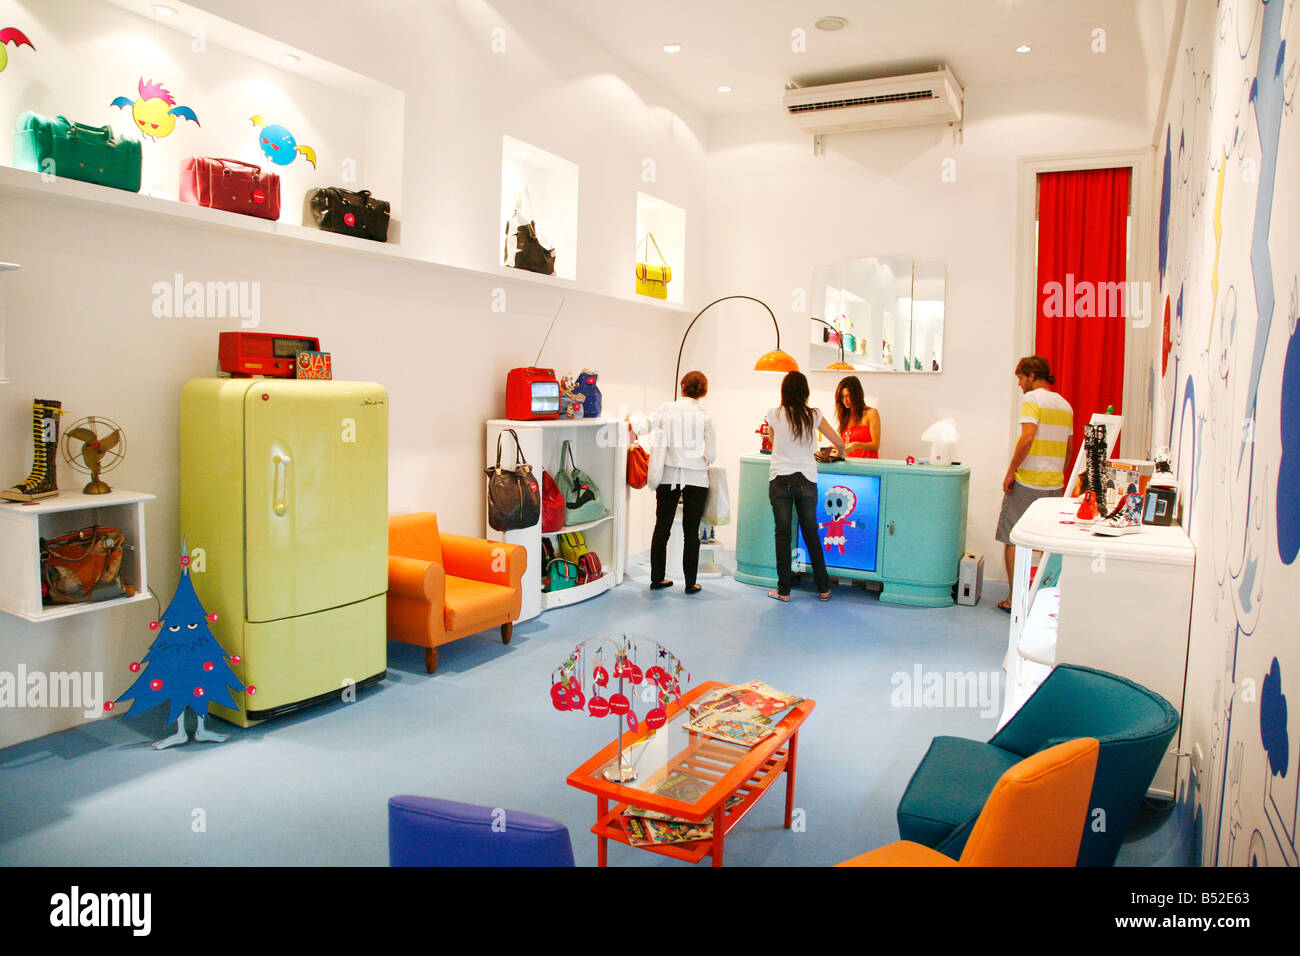 March 2008 - Tripping a trendy furniture and fashion shop in Palermo Viejo known as Soho Buenos Aires Argentina - Stock Image